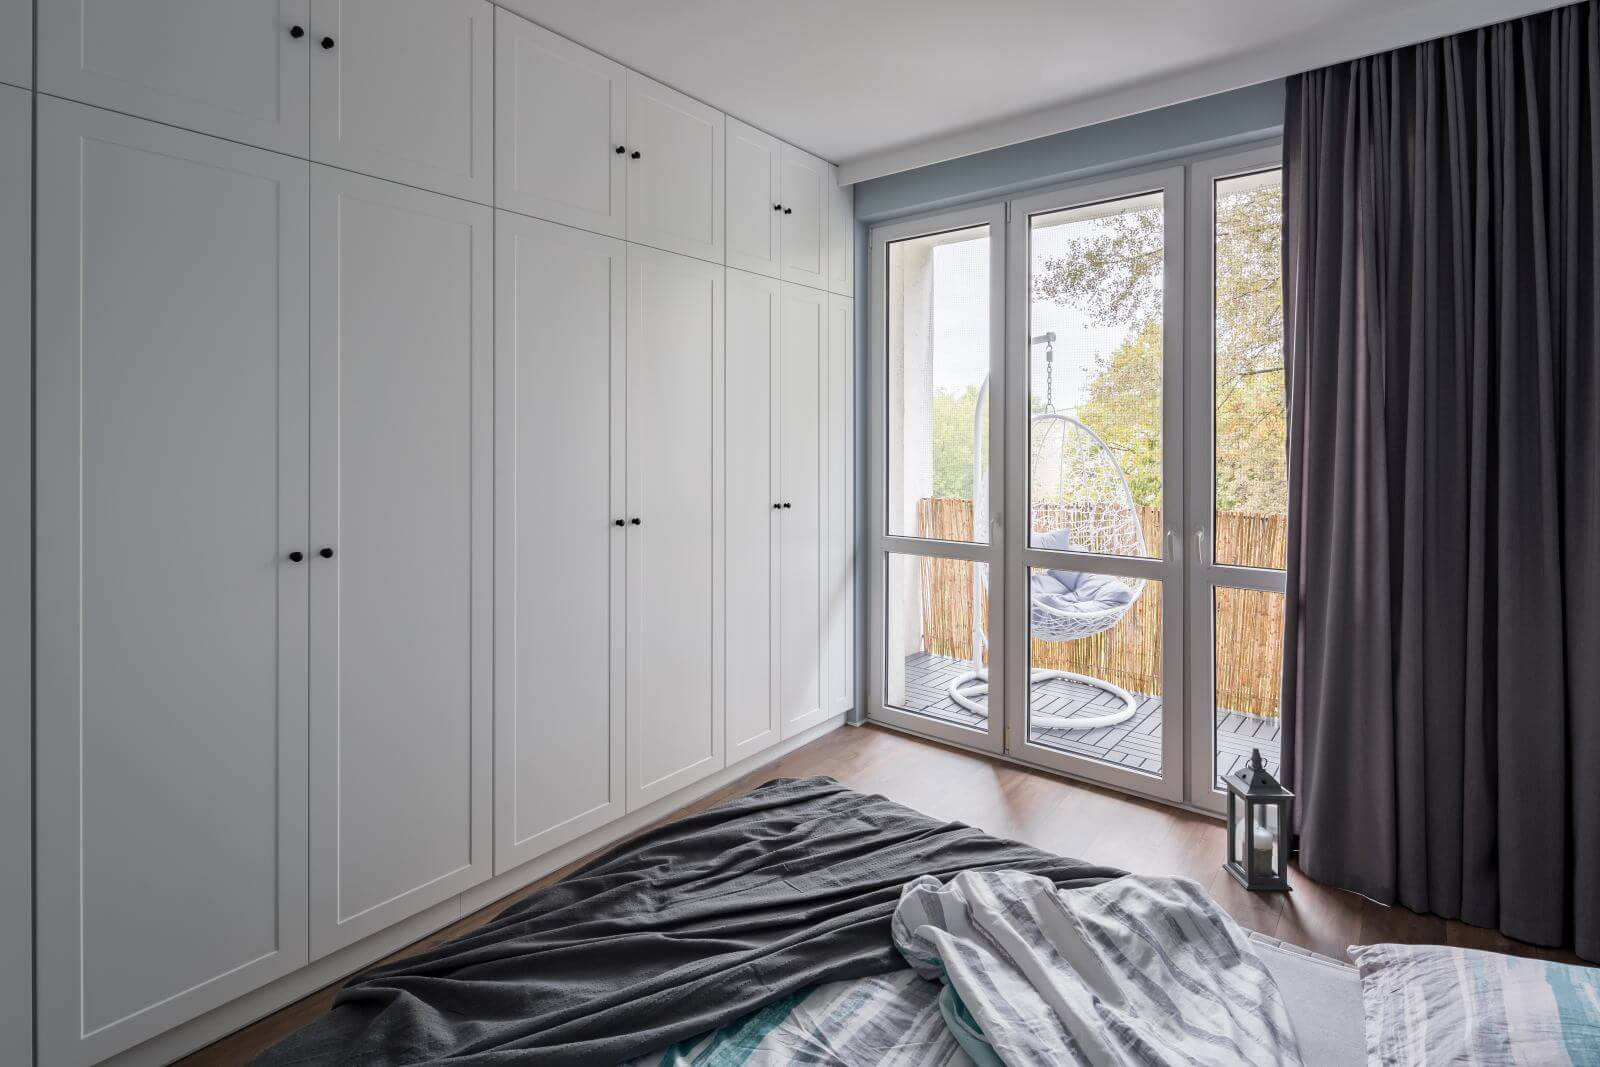 Modern bedroom with big, white wardrobe and window